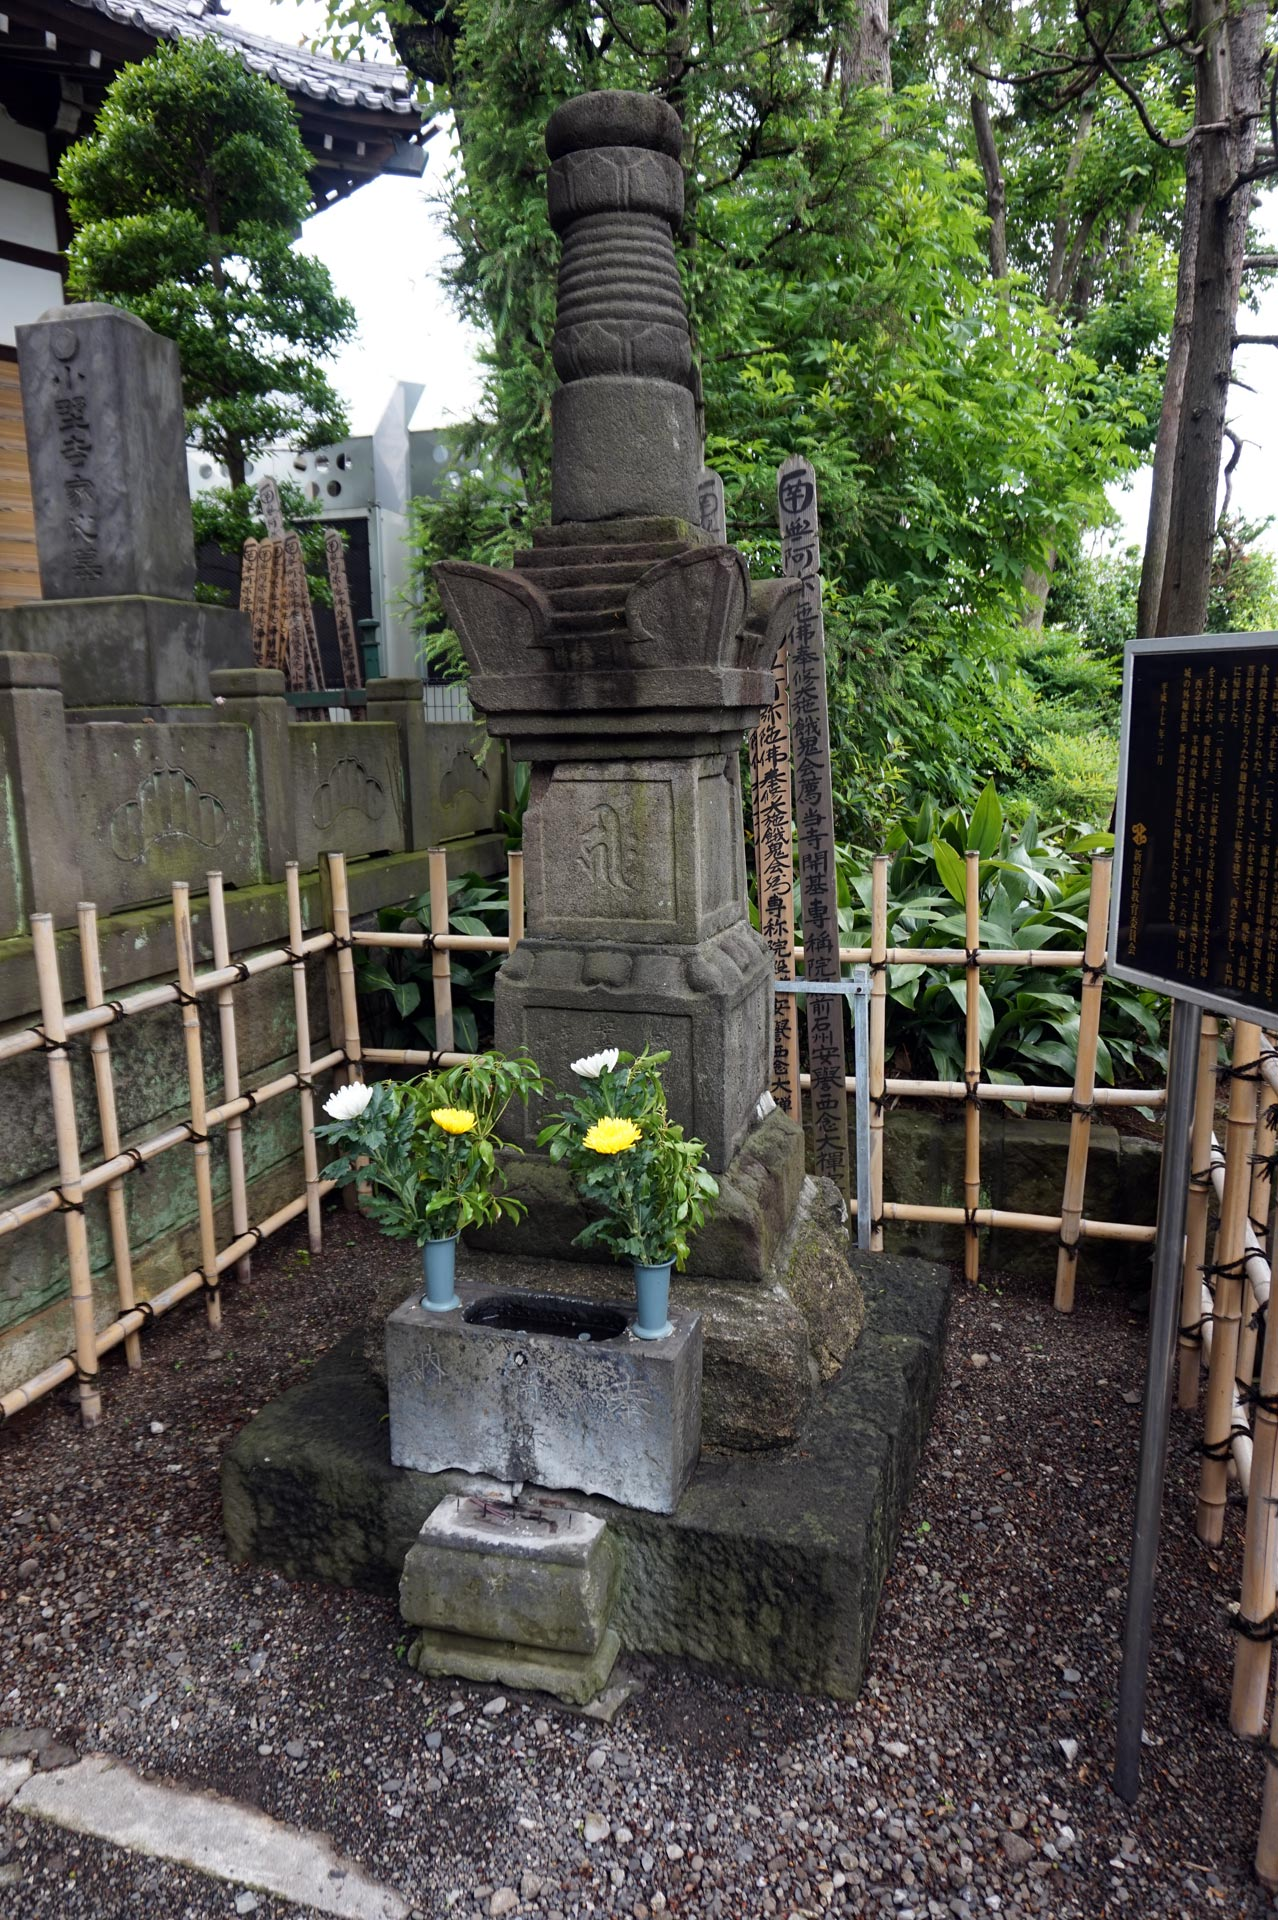 The grave of the real Hattori Hanzō